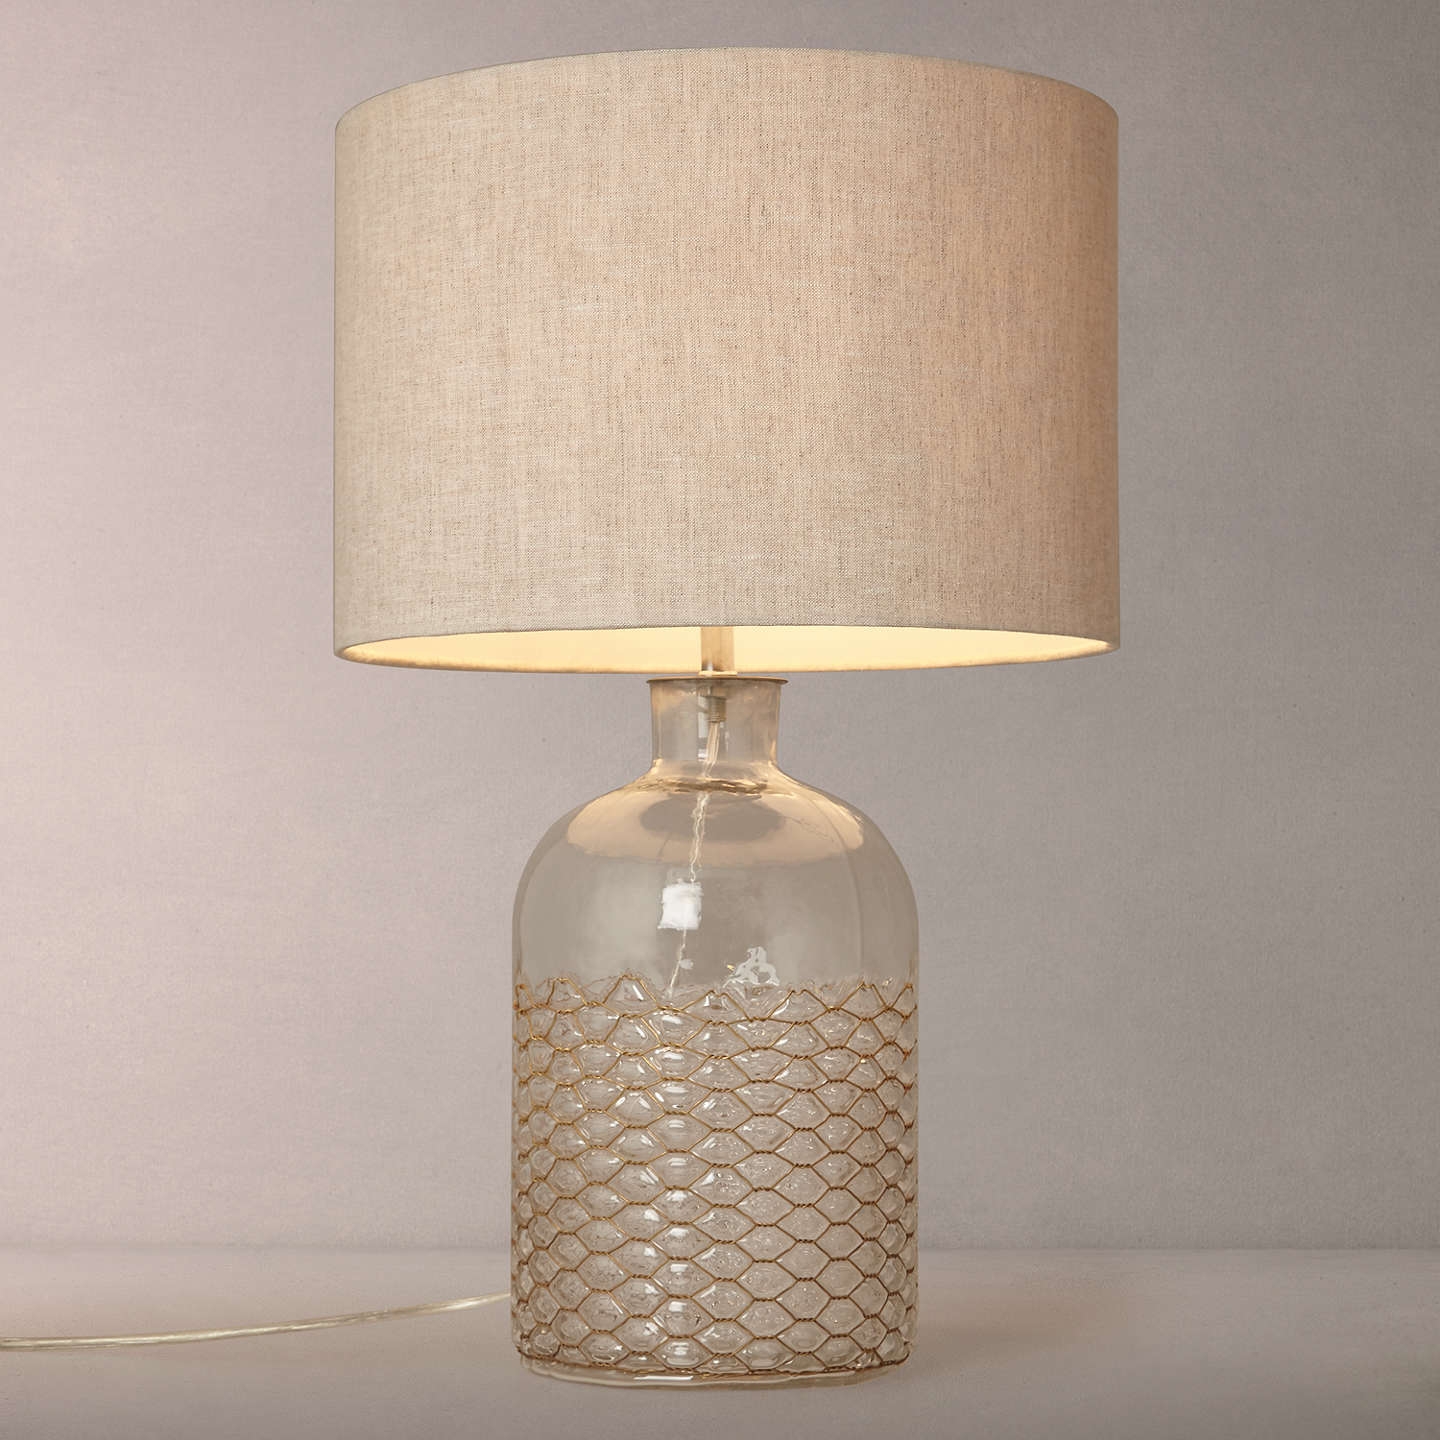 john lewis croft kingsley glass and wire table lamp at john lewis